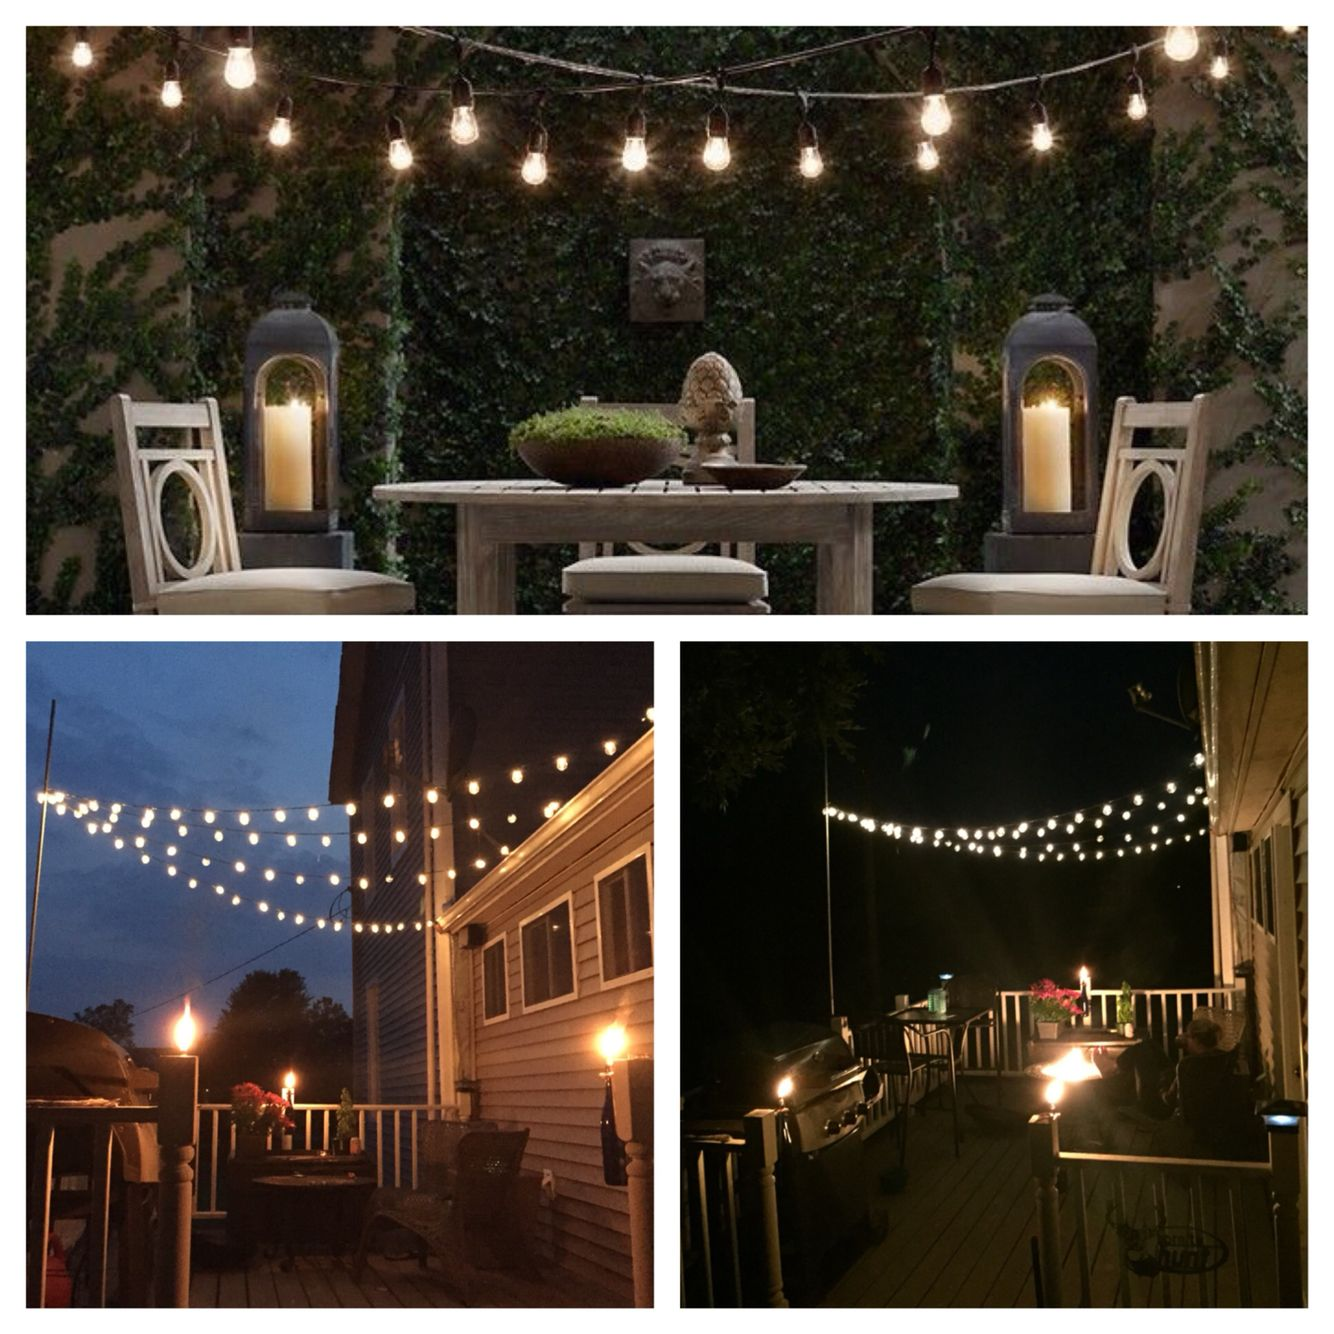 lighting tiki torches. Bottom Pics Finished Deck With Edison String Lights, Wine Bottle Tiki Torches, Fire And Bistro Table. Lighting Torches A